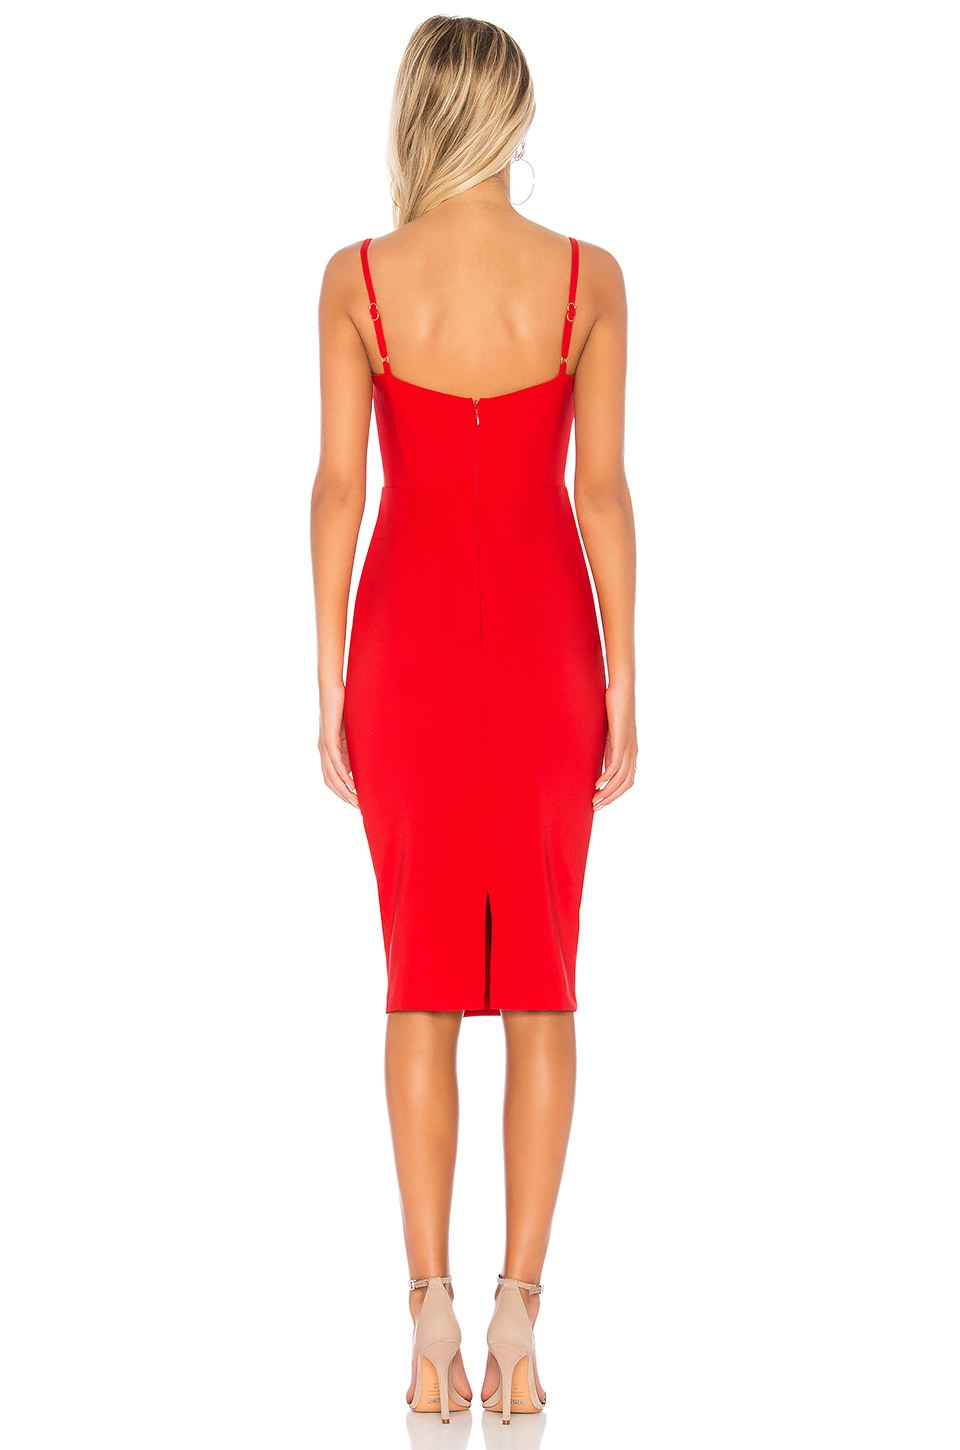 Allure Midi Dress, view 3, click to view large image.